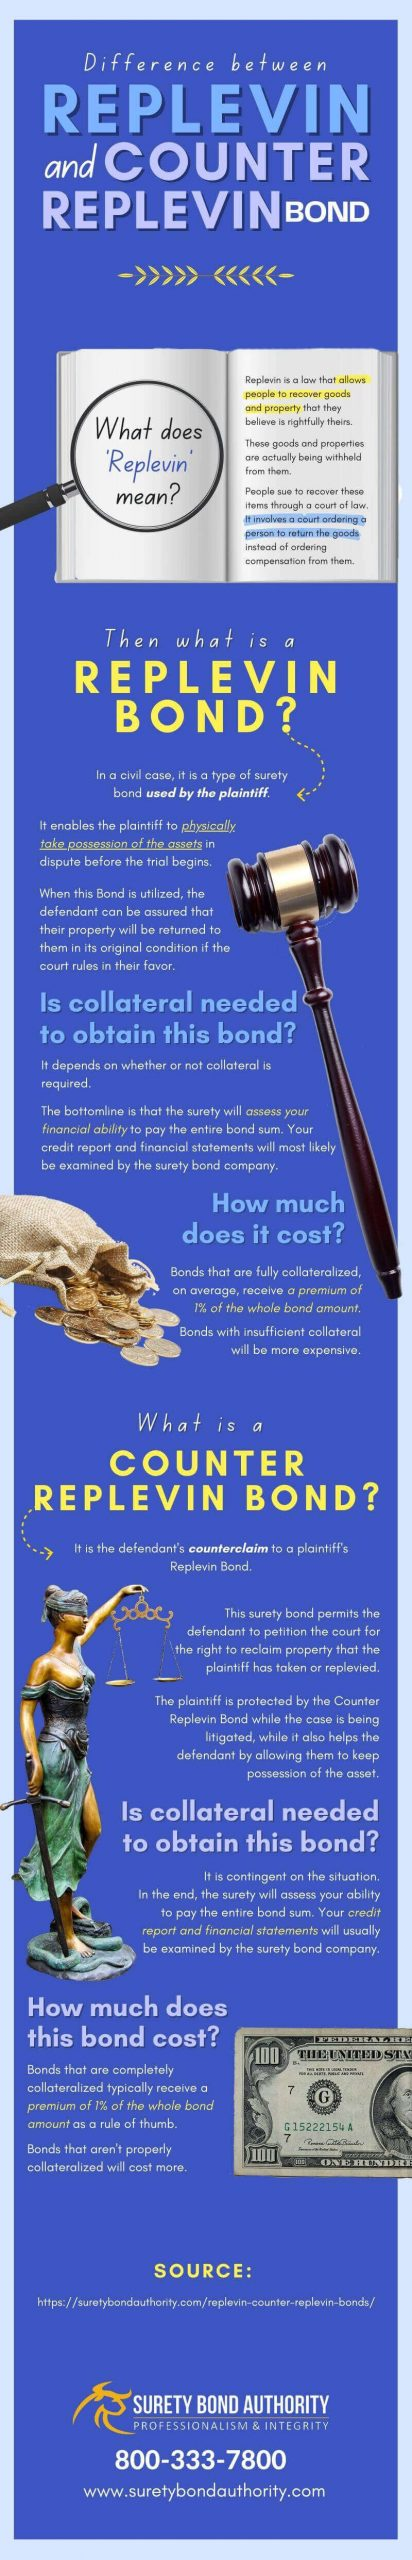 Replevin and Counter Replevin Bond Infographic